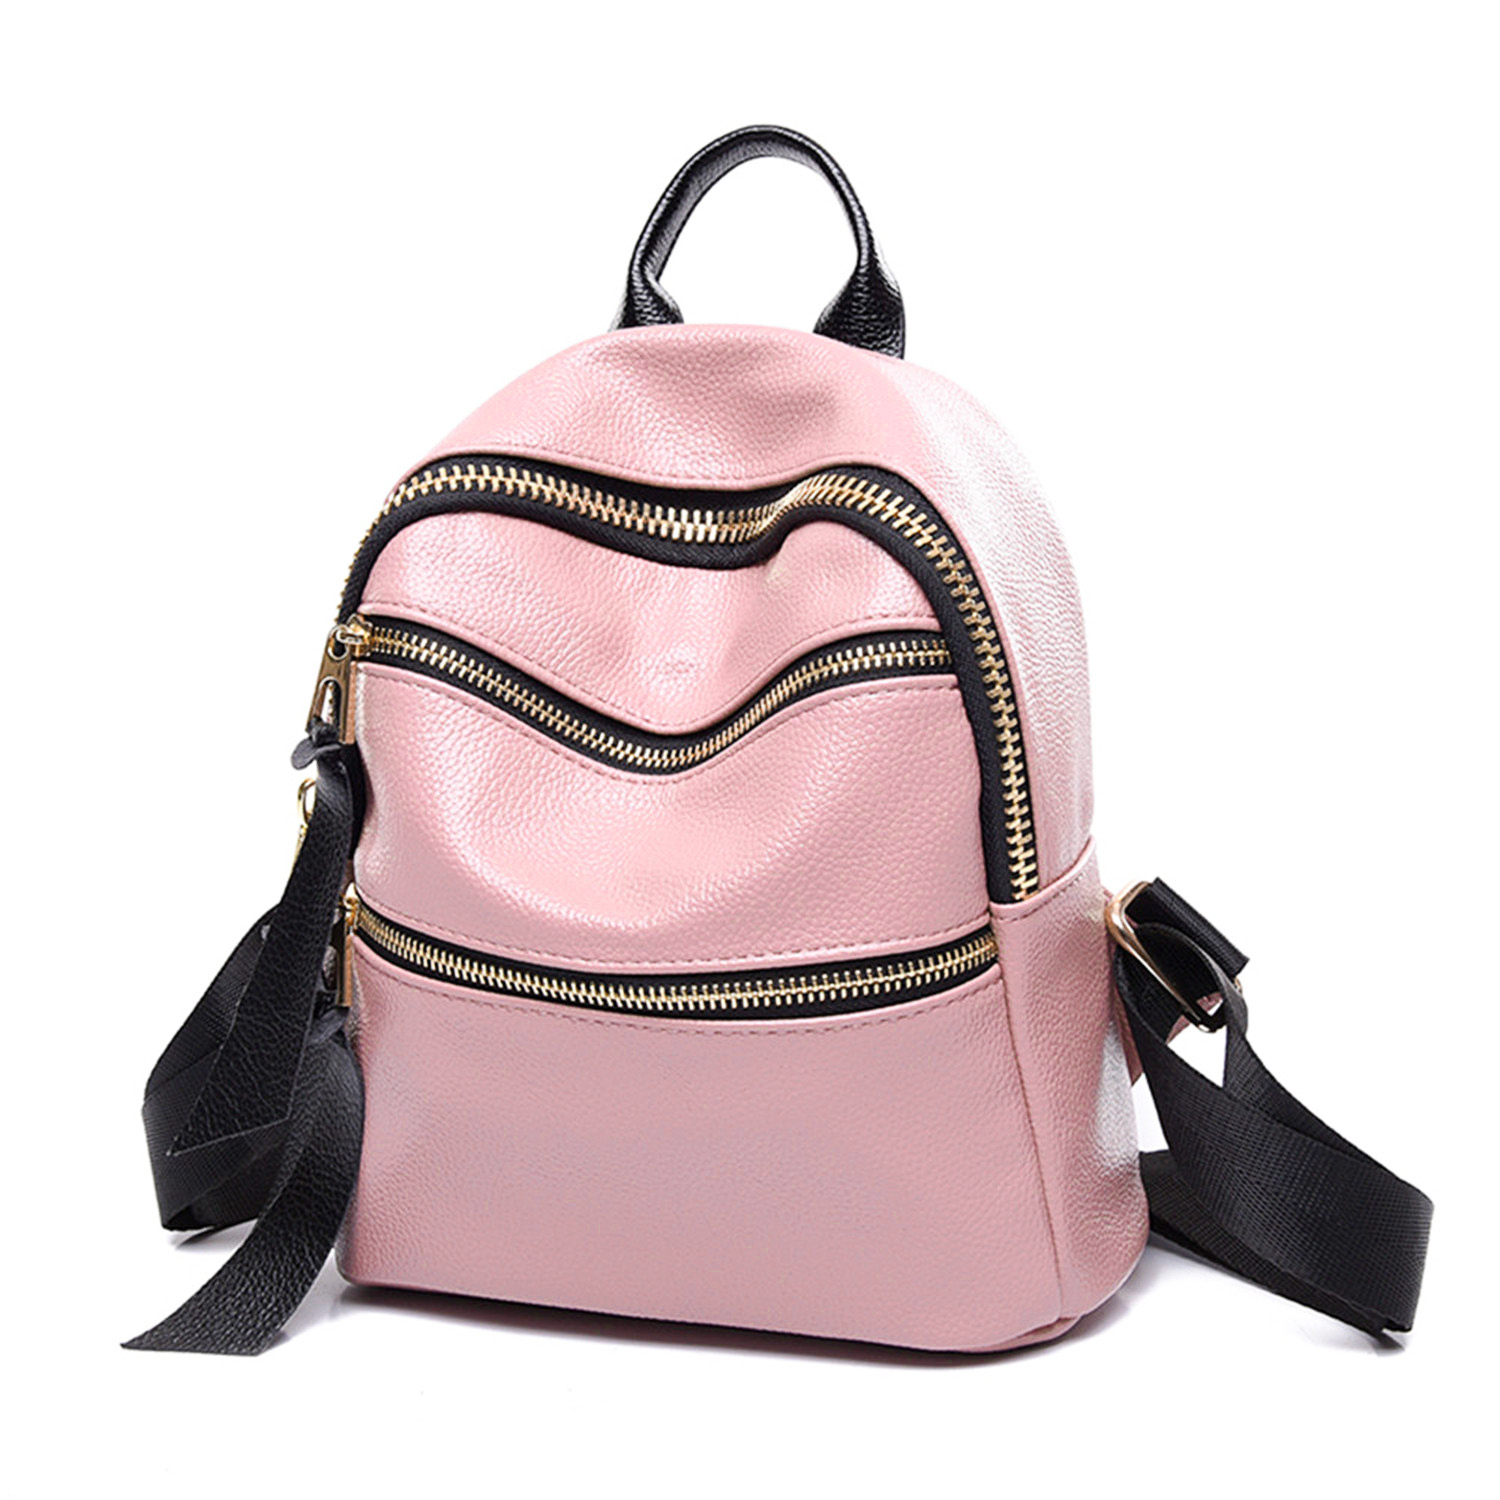 NEW: Pink PU Leather Mini Backpack Purse V2